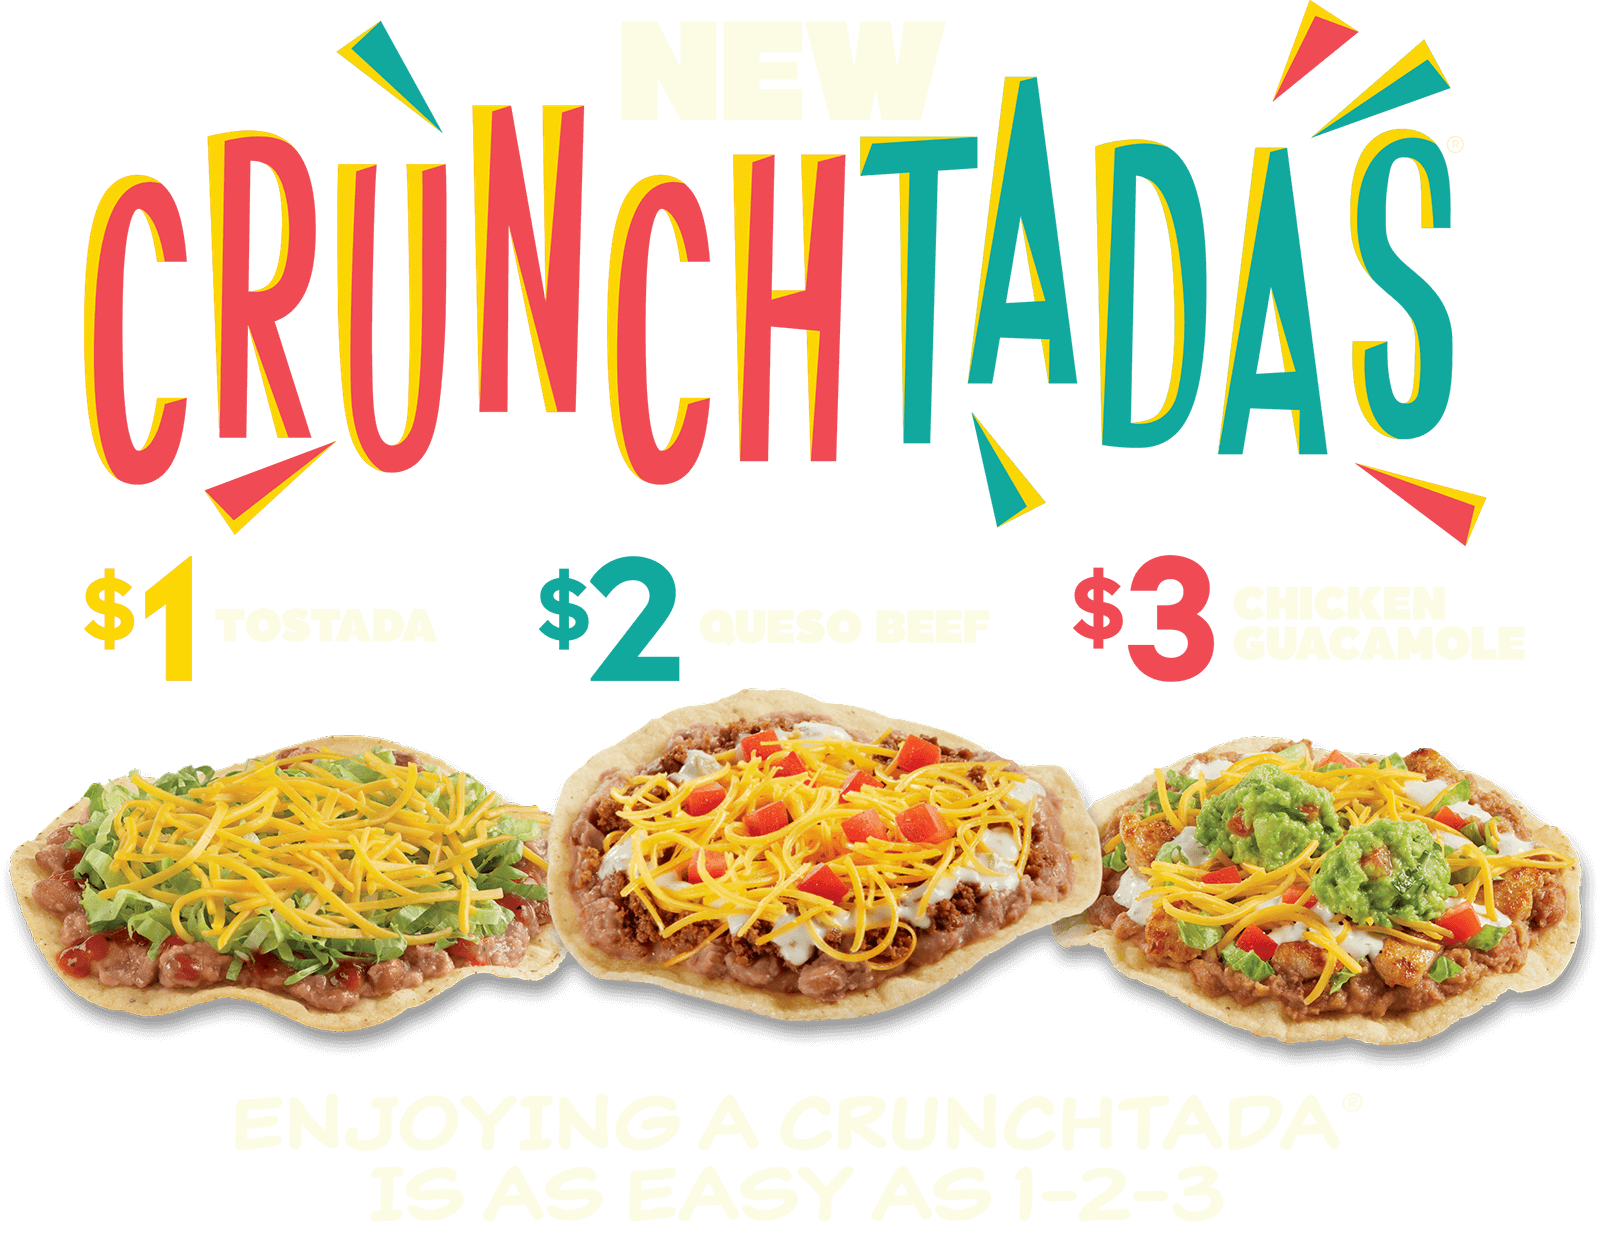 Try Our New New Crunchtadas! $1 Tostada, $2 Queso Beef, $3 Chicken Guacamole. Click Here to Find a Del Taco Location. Enjoying a Crunchtada is as easy as 1-2-3